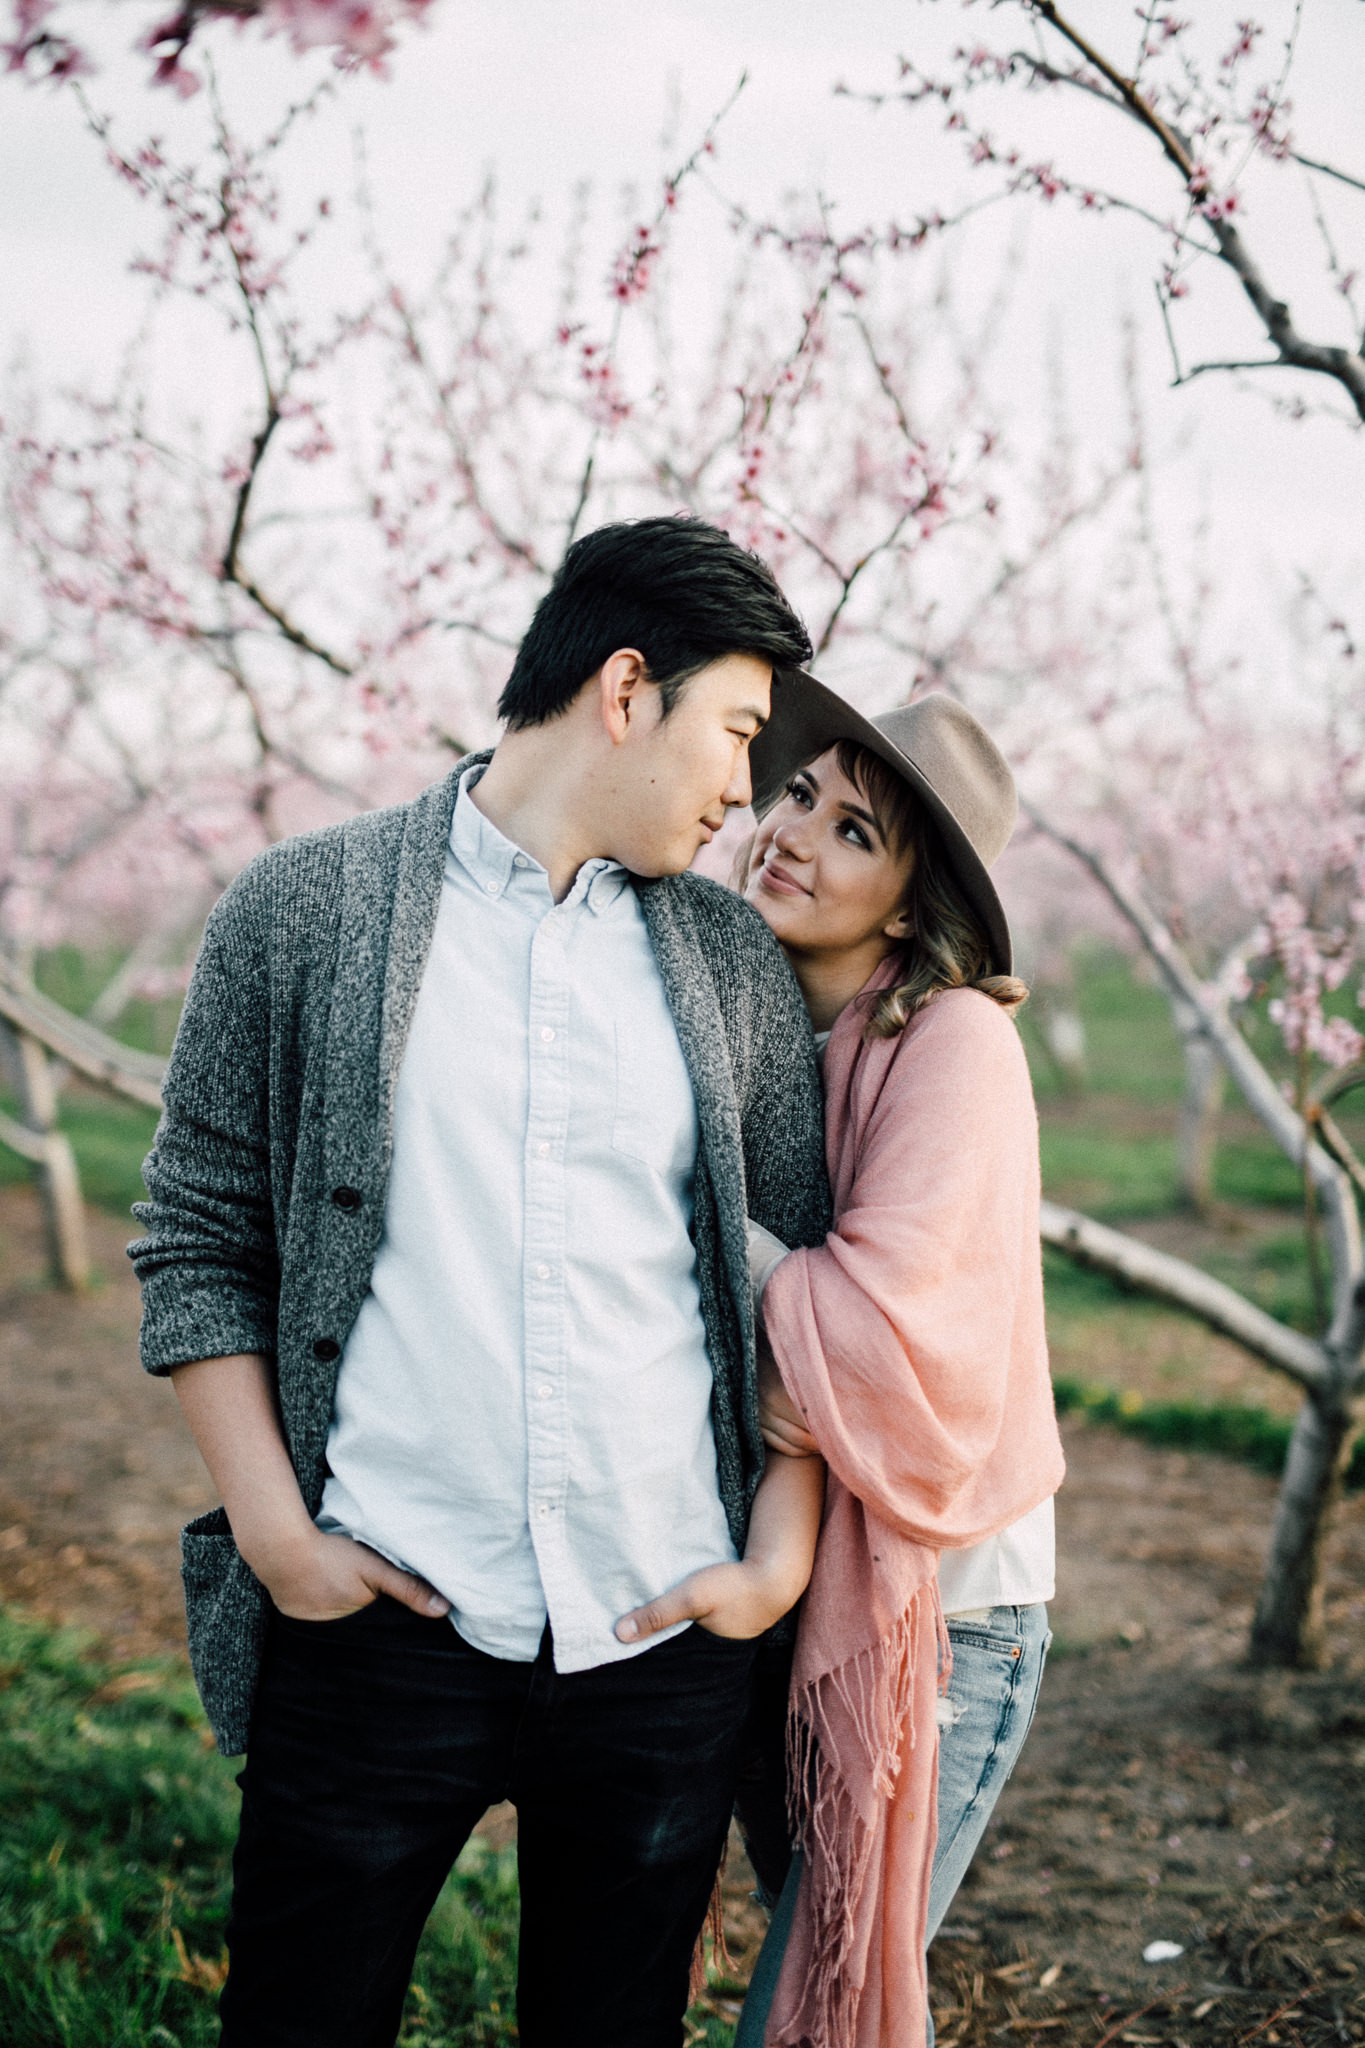 Niagara-Portrait-Session-Niagara-On-The-Lake-Cherry-Blossoms-photography-by-Simply-Lace-Photography-027.JPG